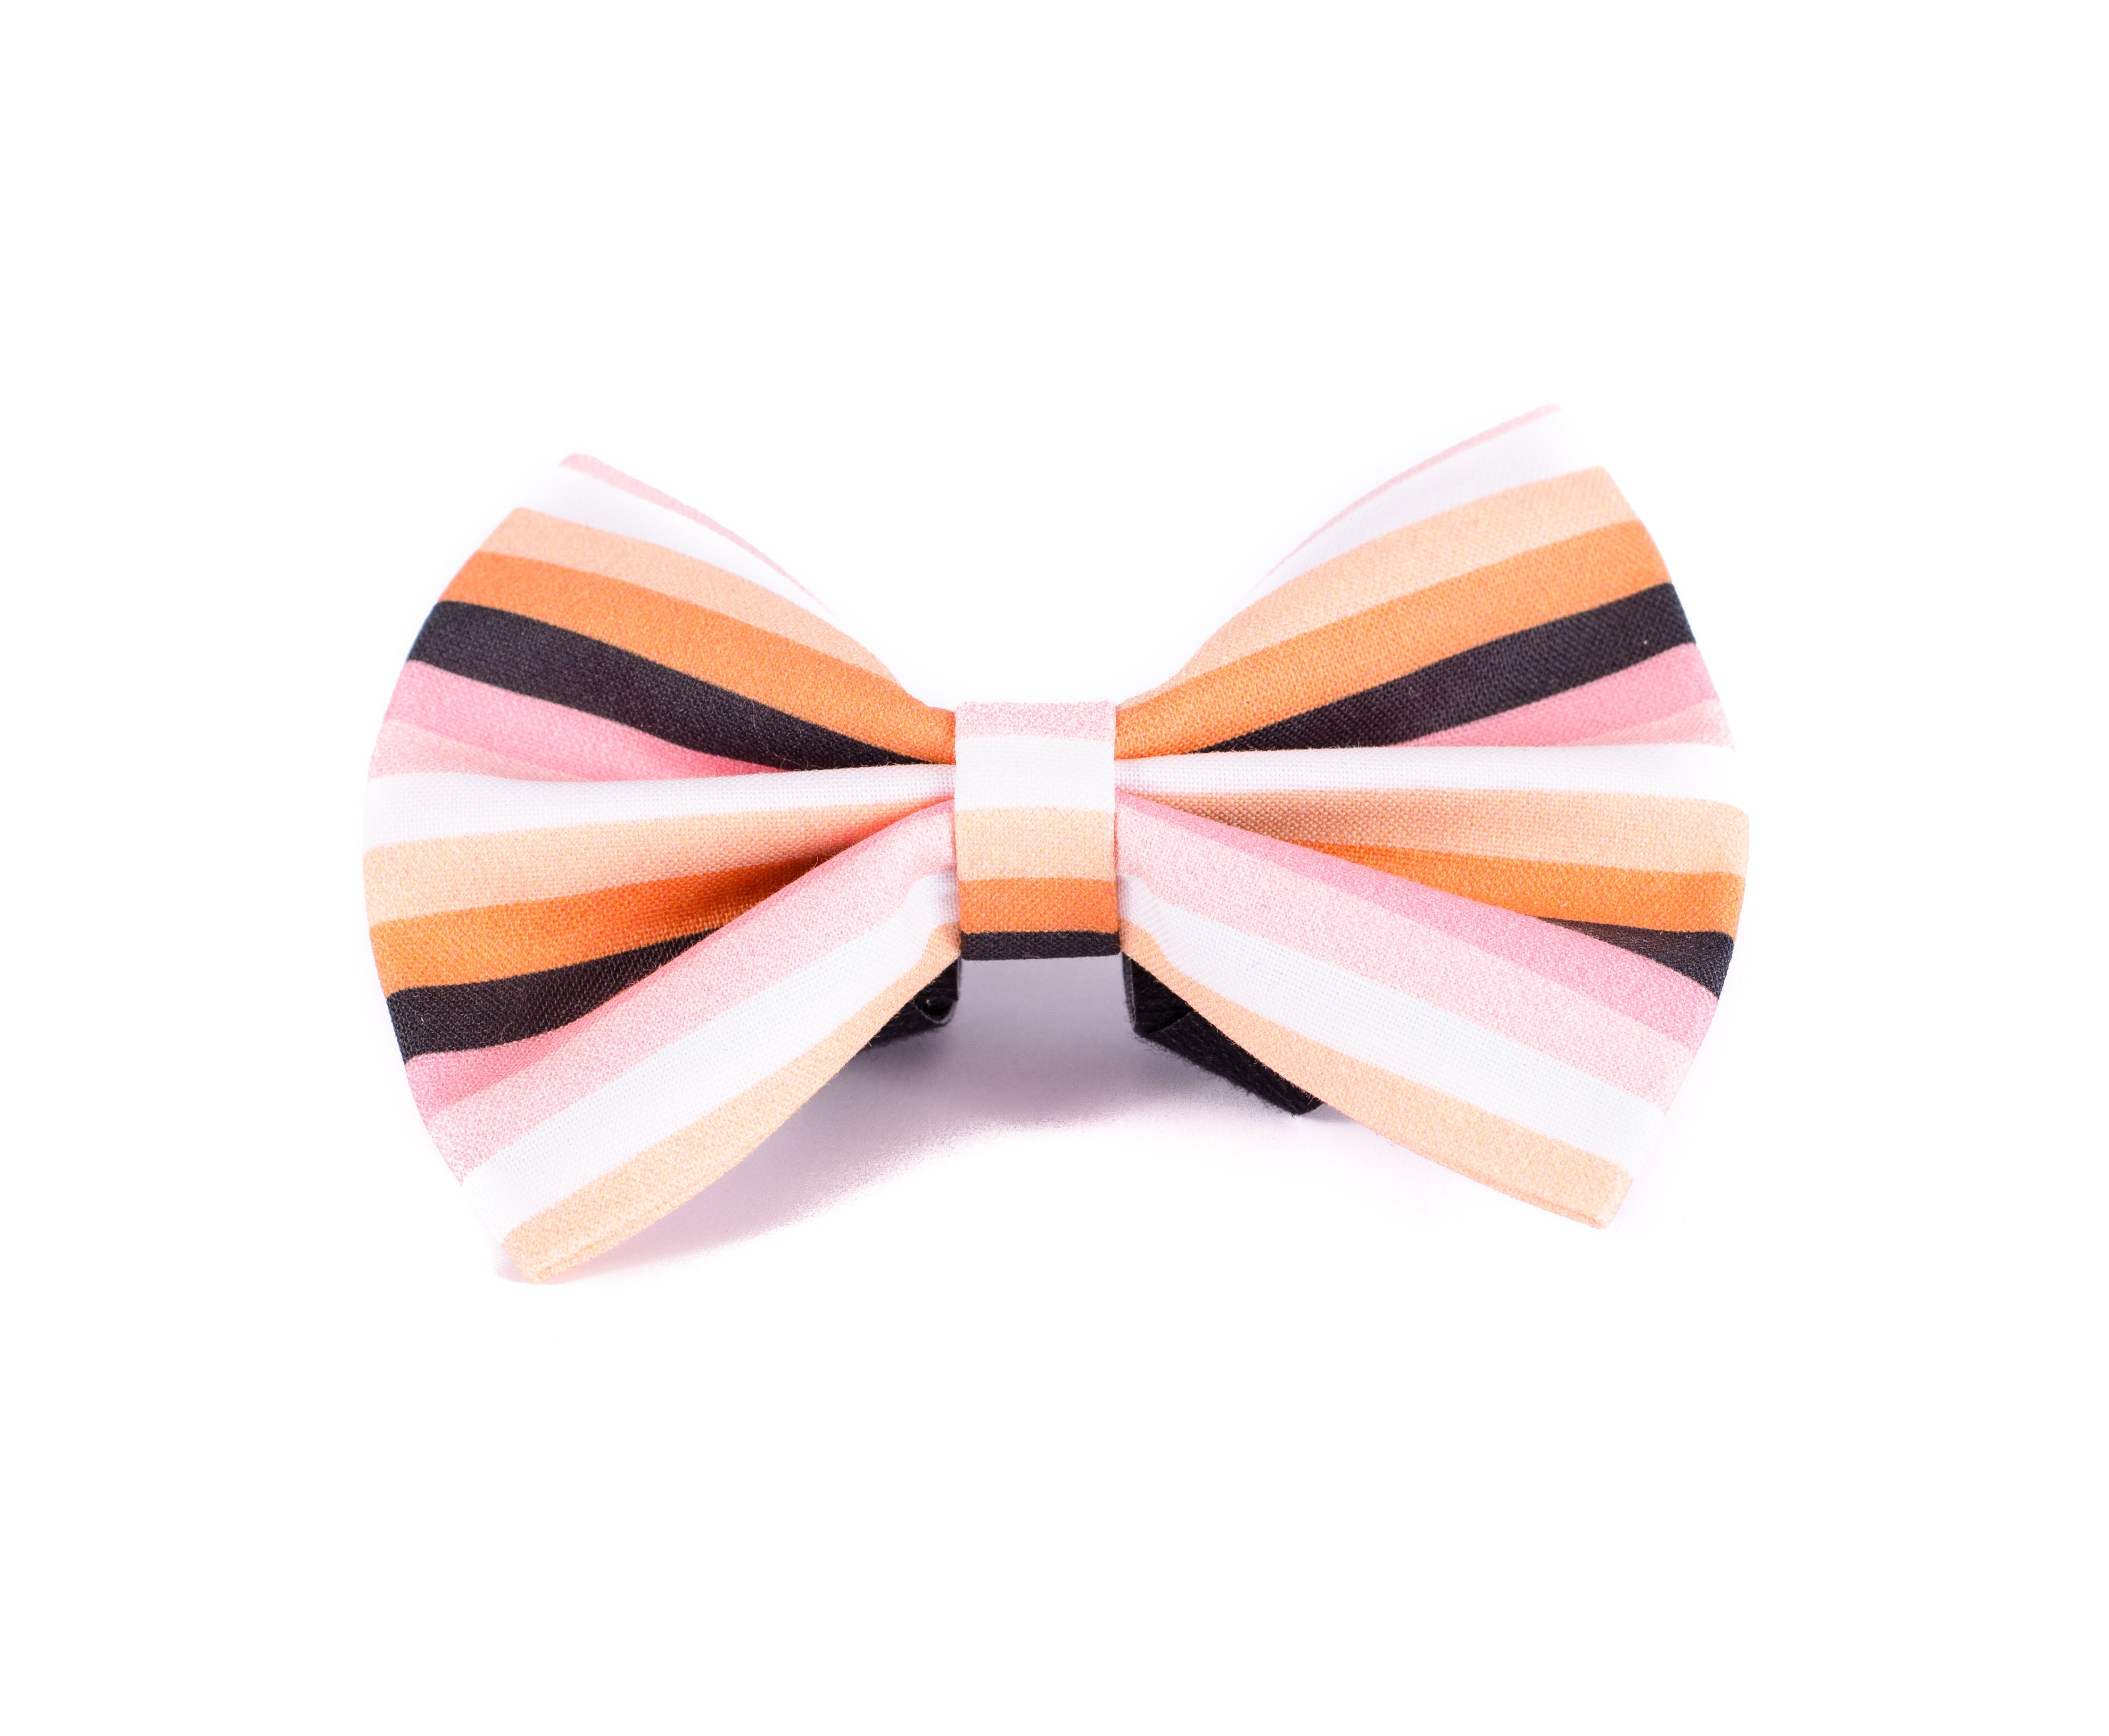 Clawdia cornwolf reverse side 💖🧡🖤 - Bow tie (NEW)